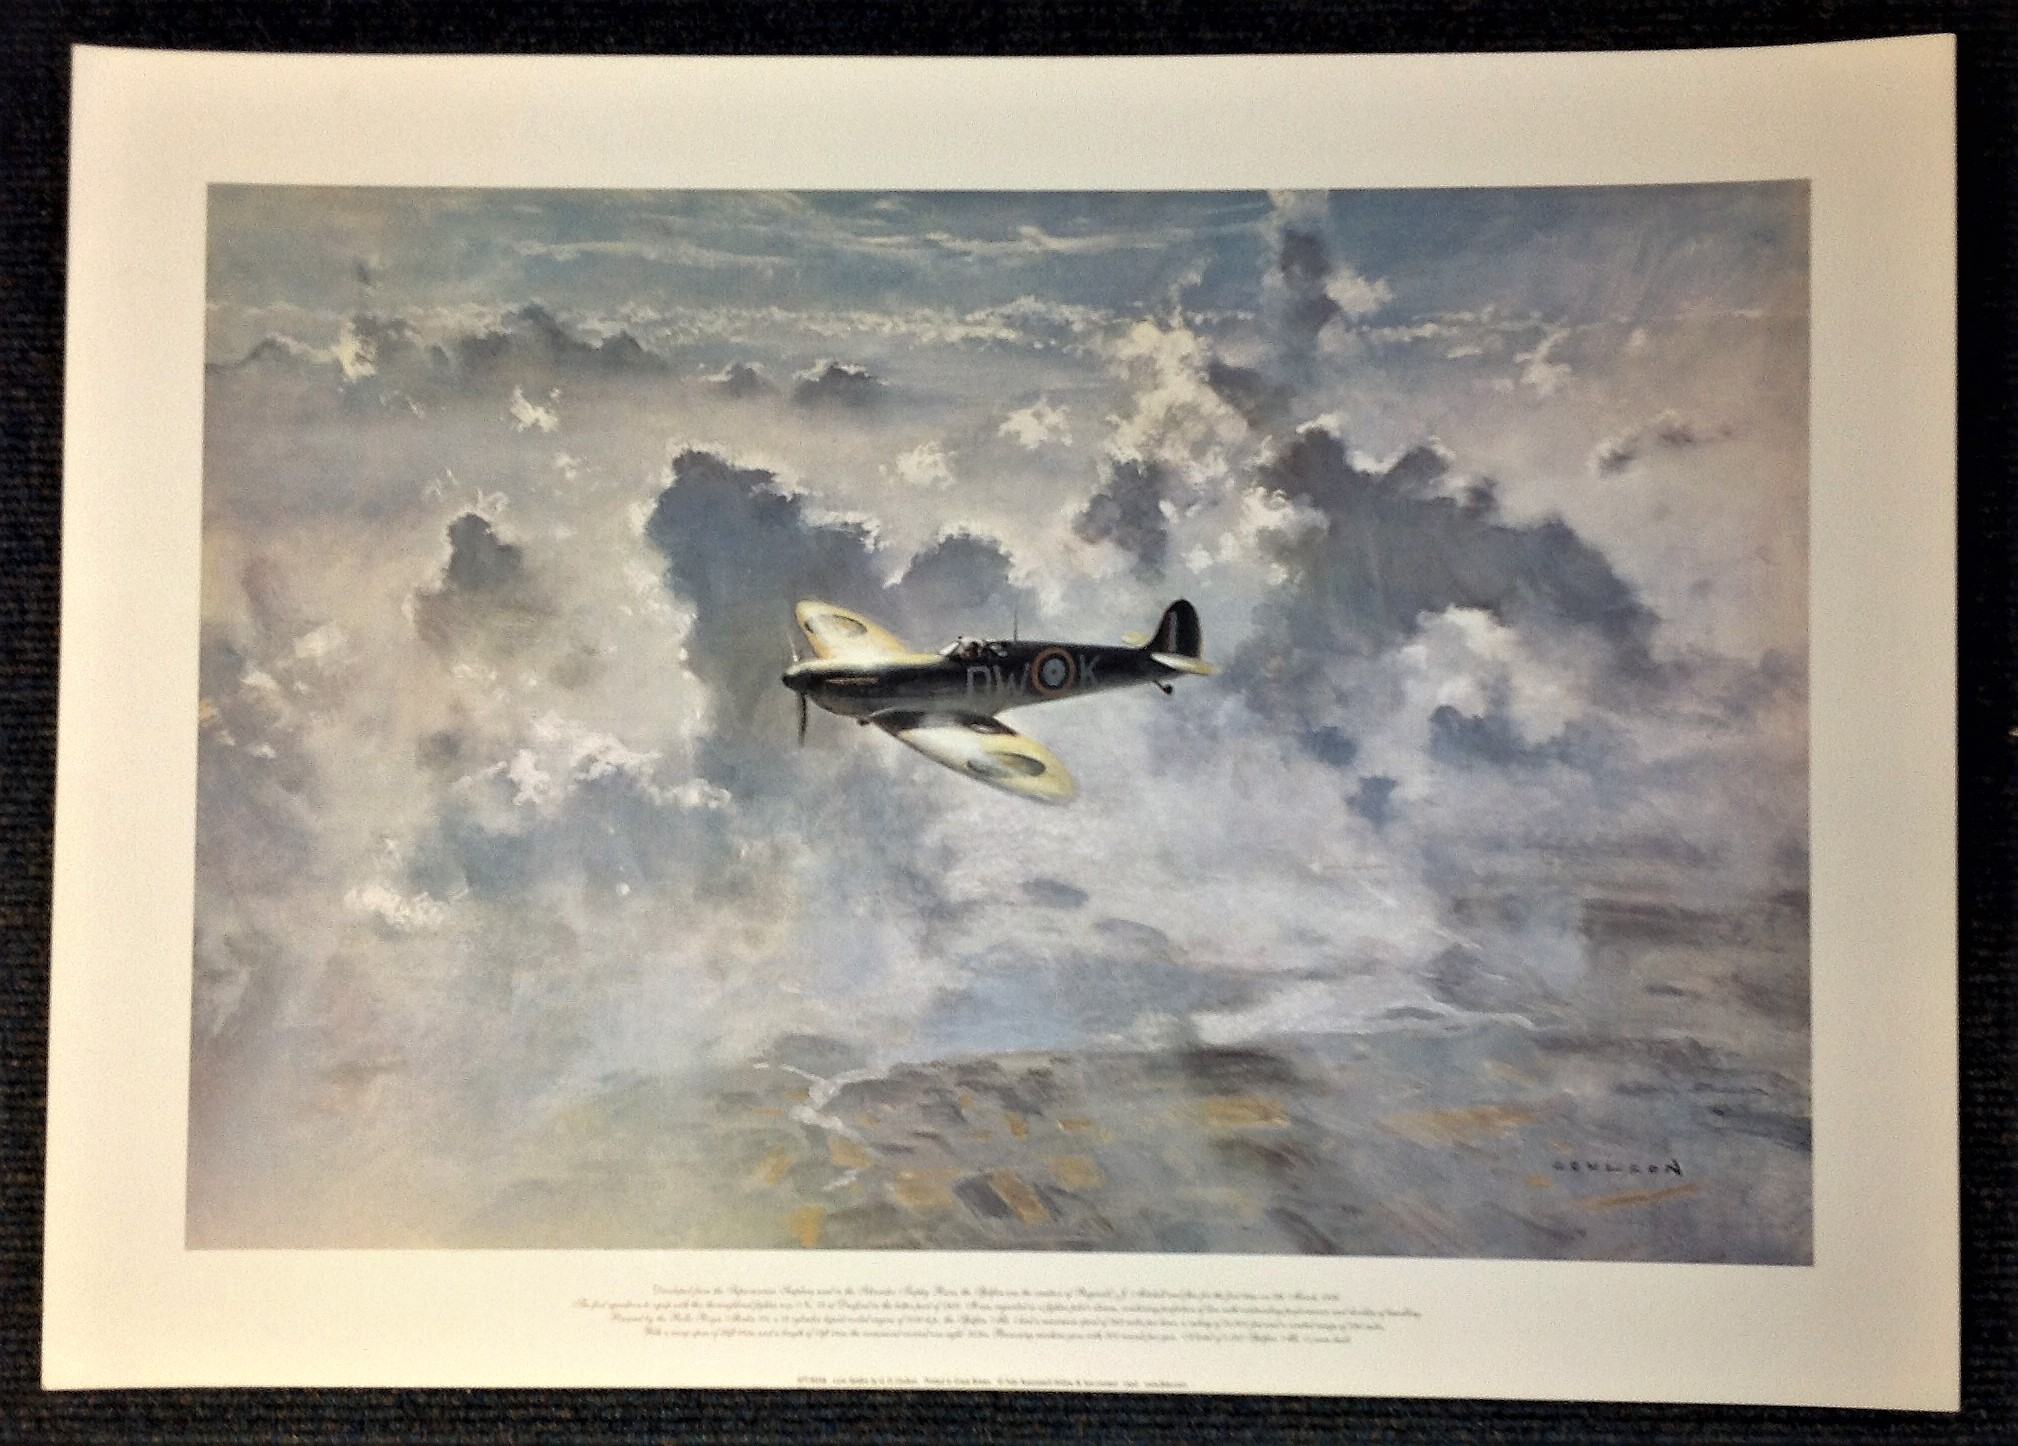 Battle of Britain 20x27 print titled Lone Spitfire by the artist Gerald Coulson picturing a Spitfire